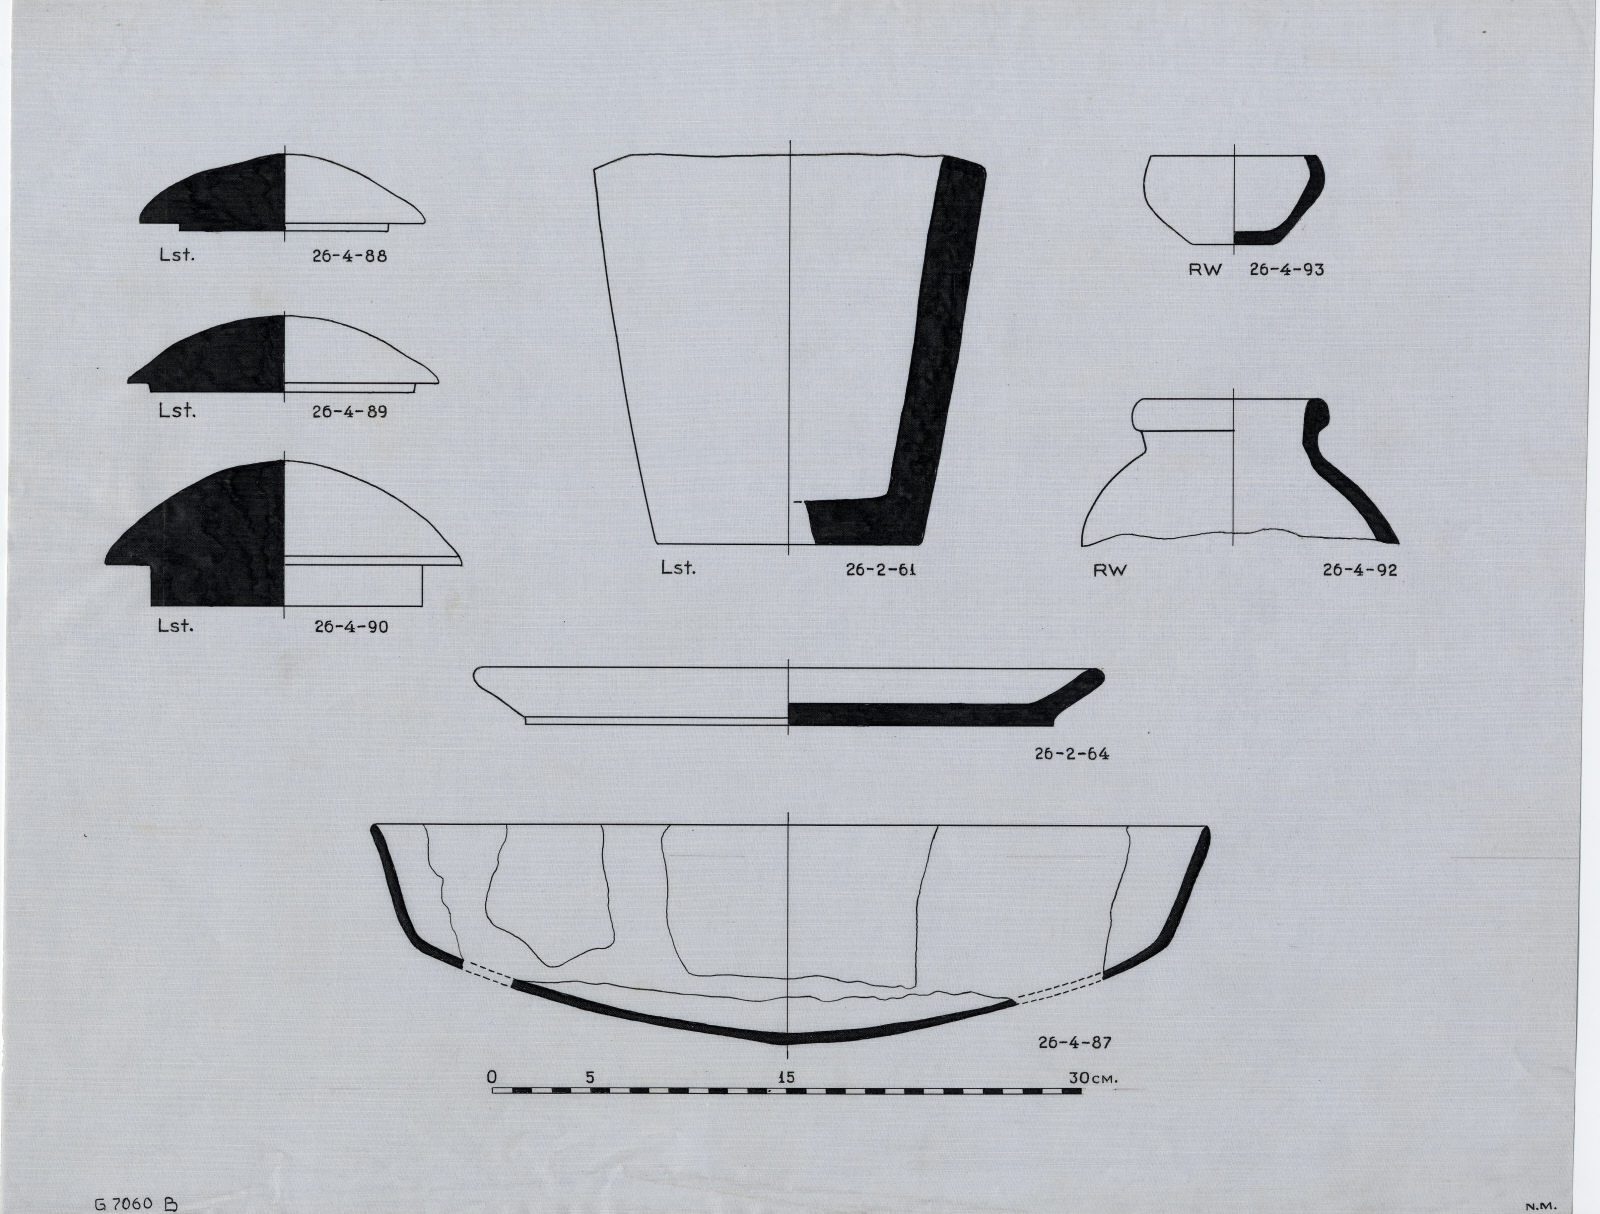 Drawings: G 7060, Shaft B: vessels and lids